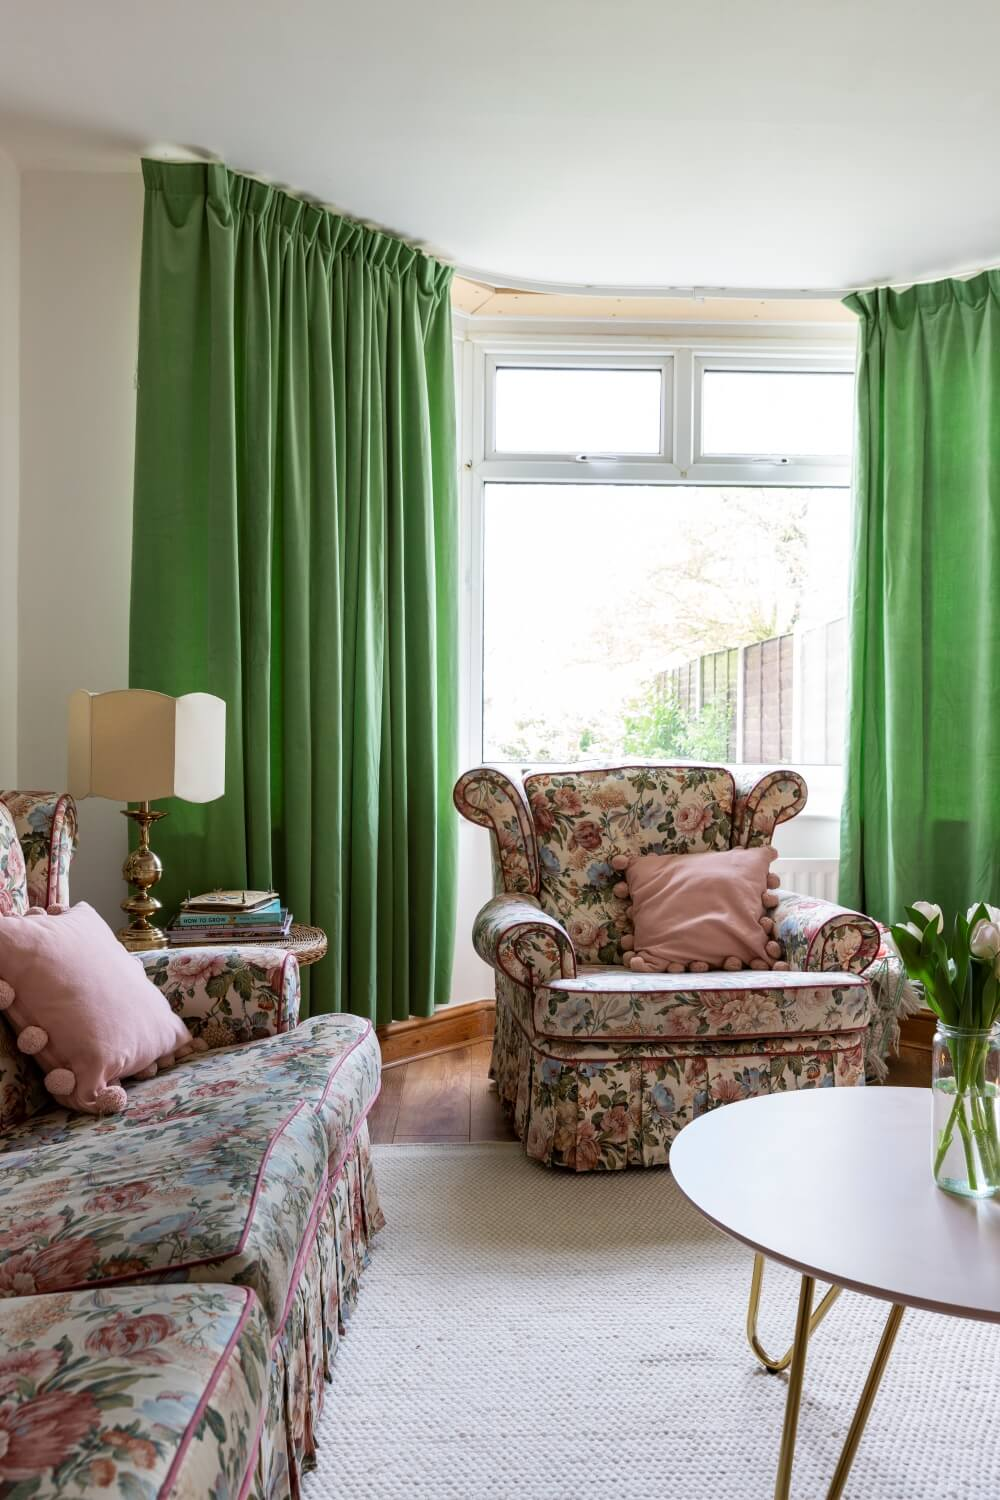 Decorate with Pink Home tour: floral vintage sofa arm chair in front of large bay window framed with lined green curtains.